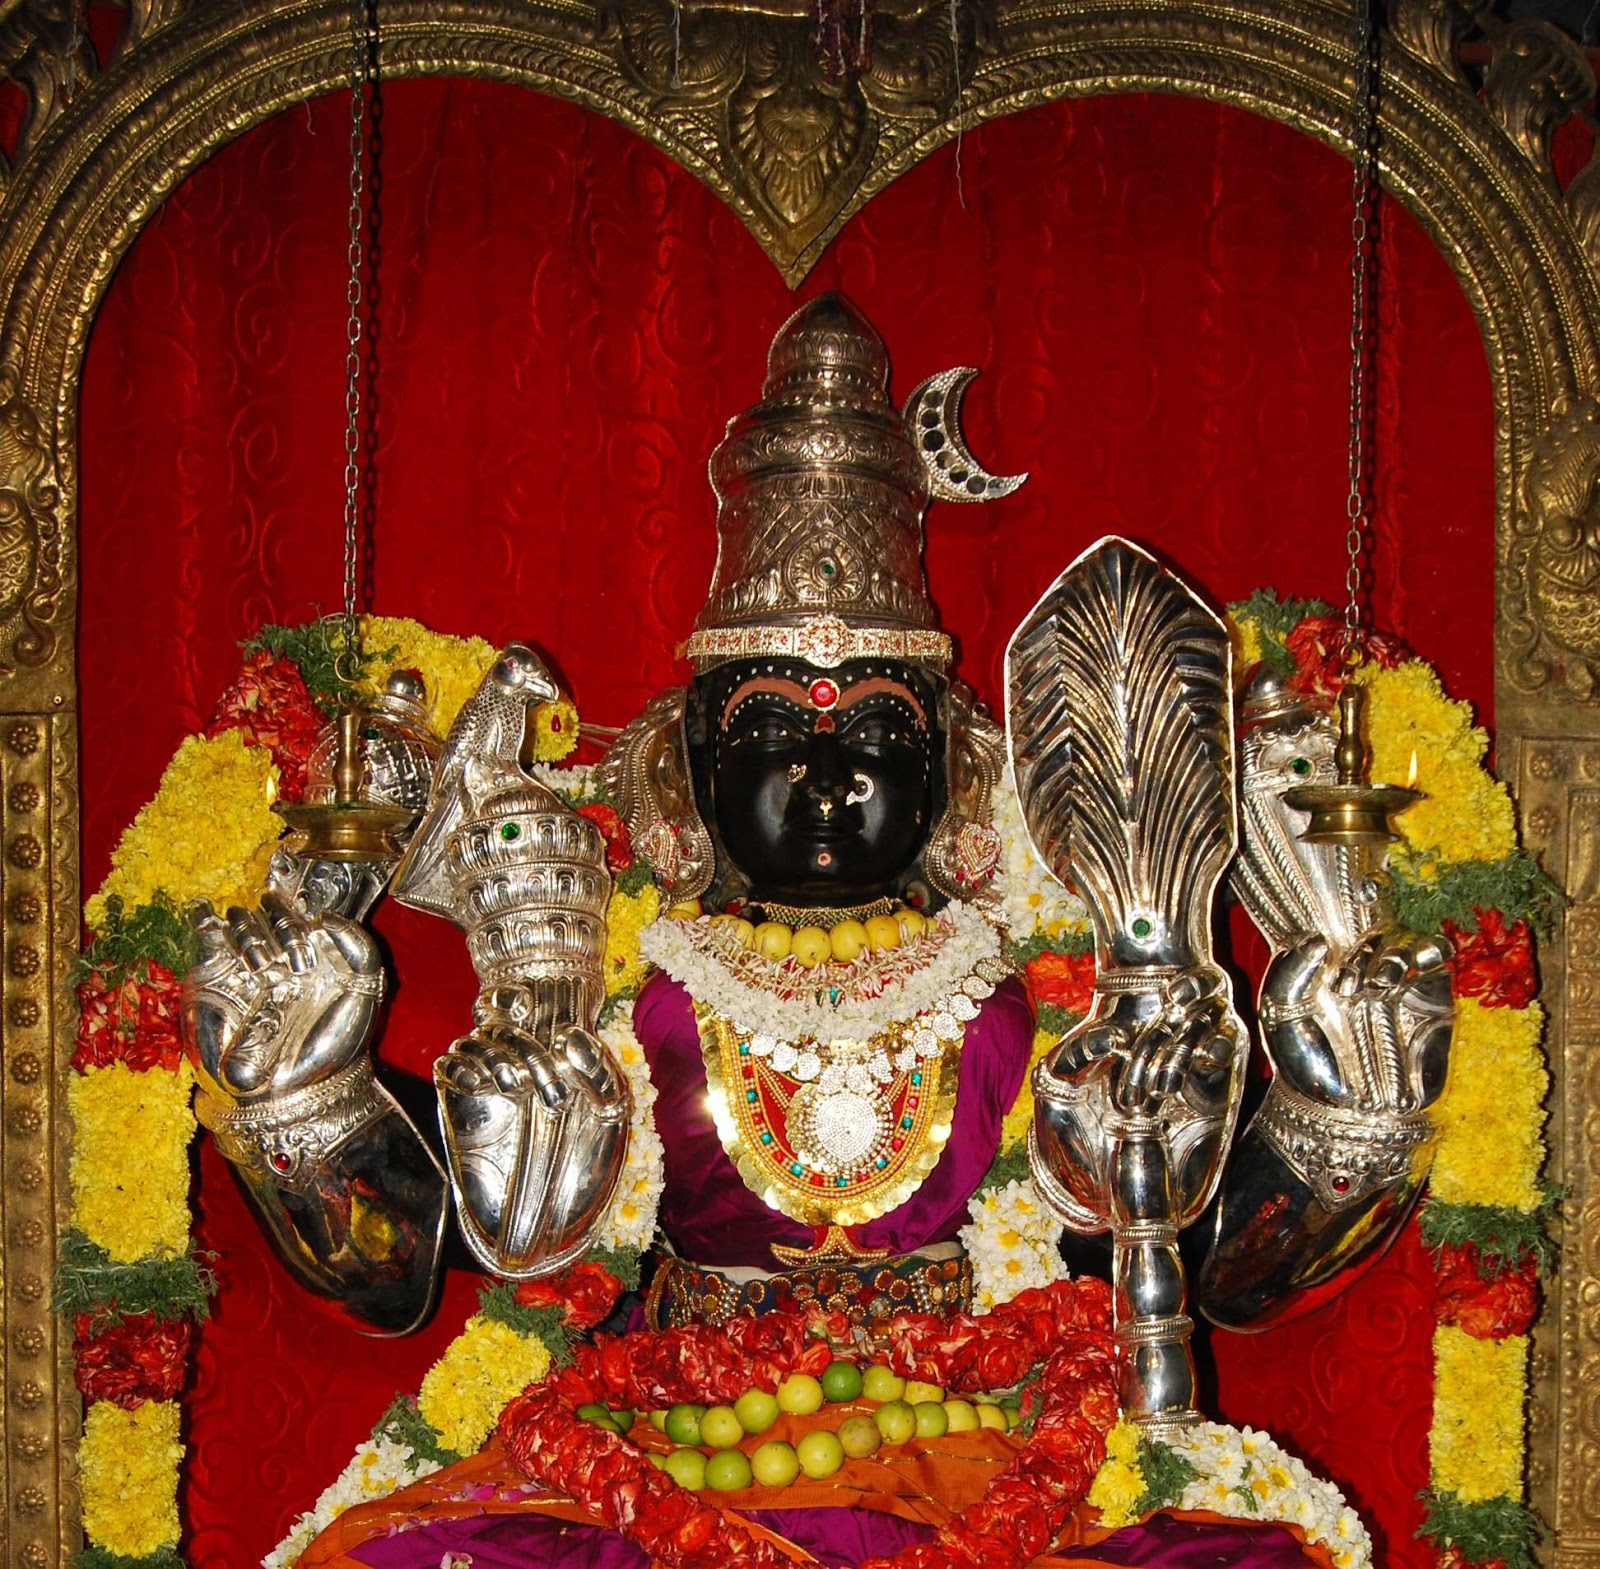 ABOUT THE TEMPLE - :: CHIDAMBARAM TEMPLE